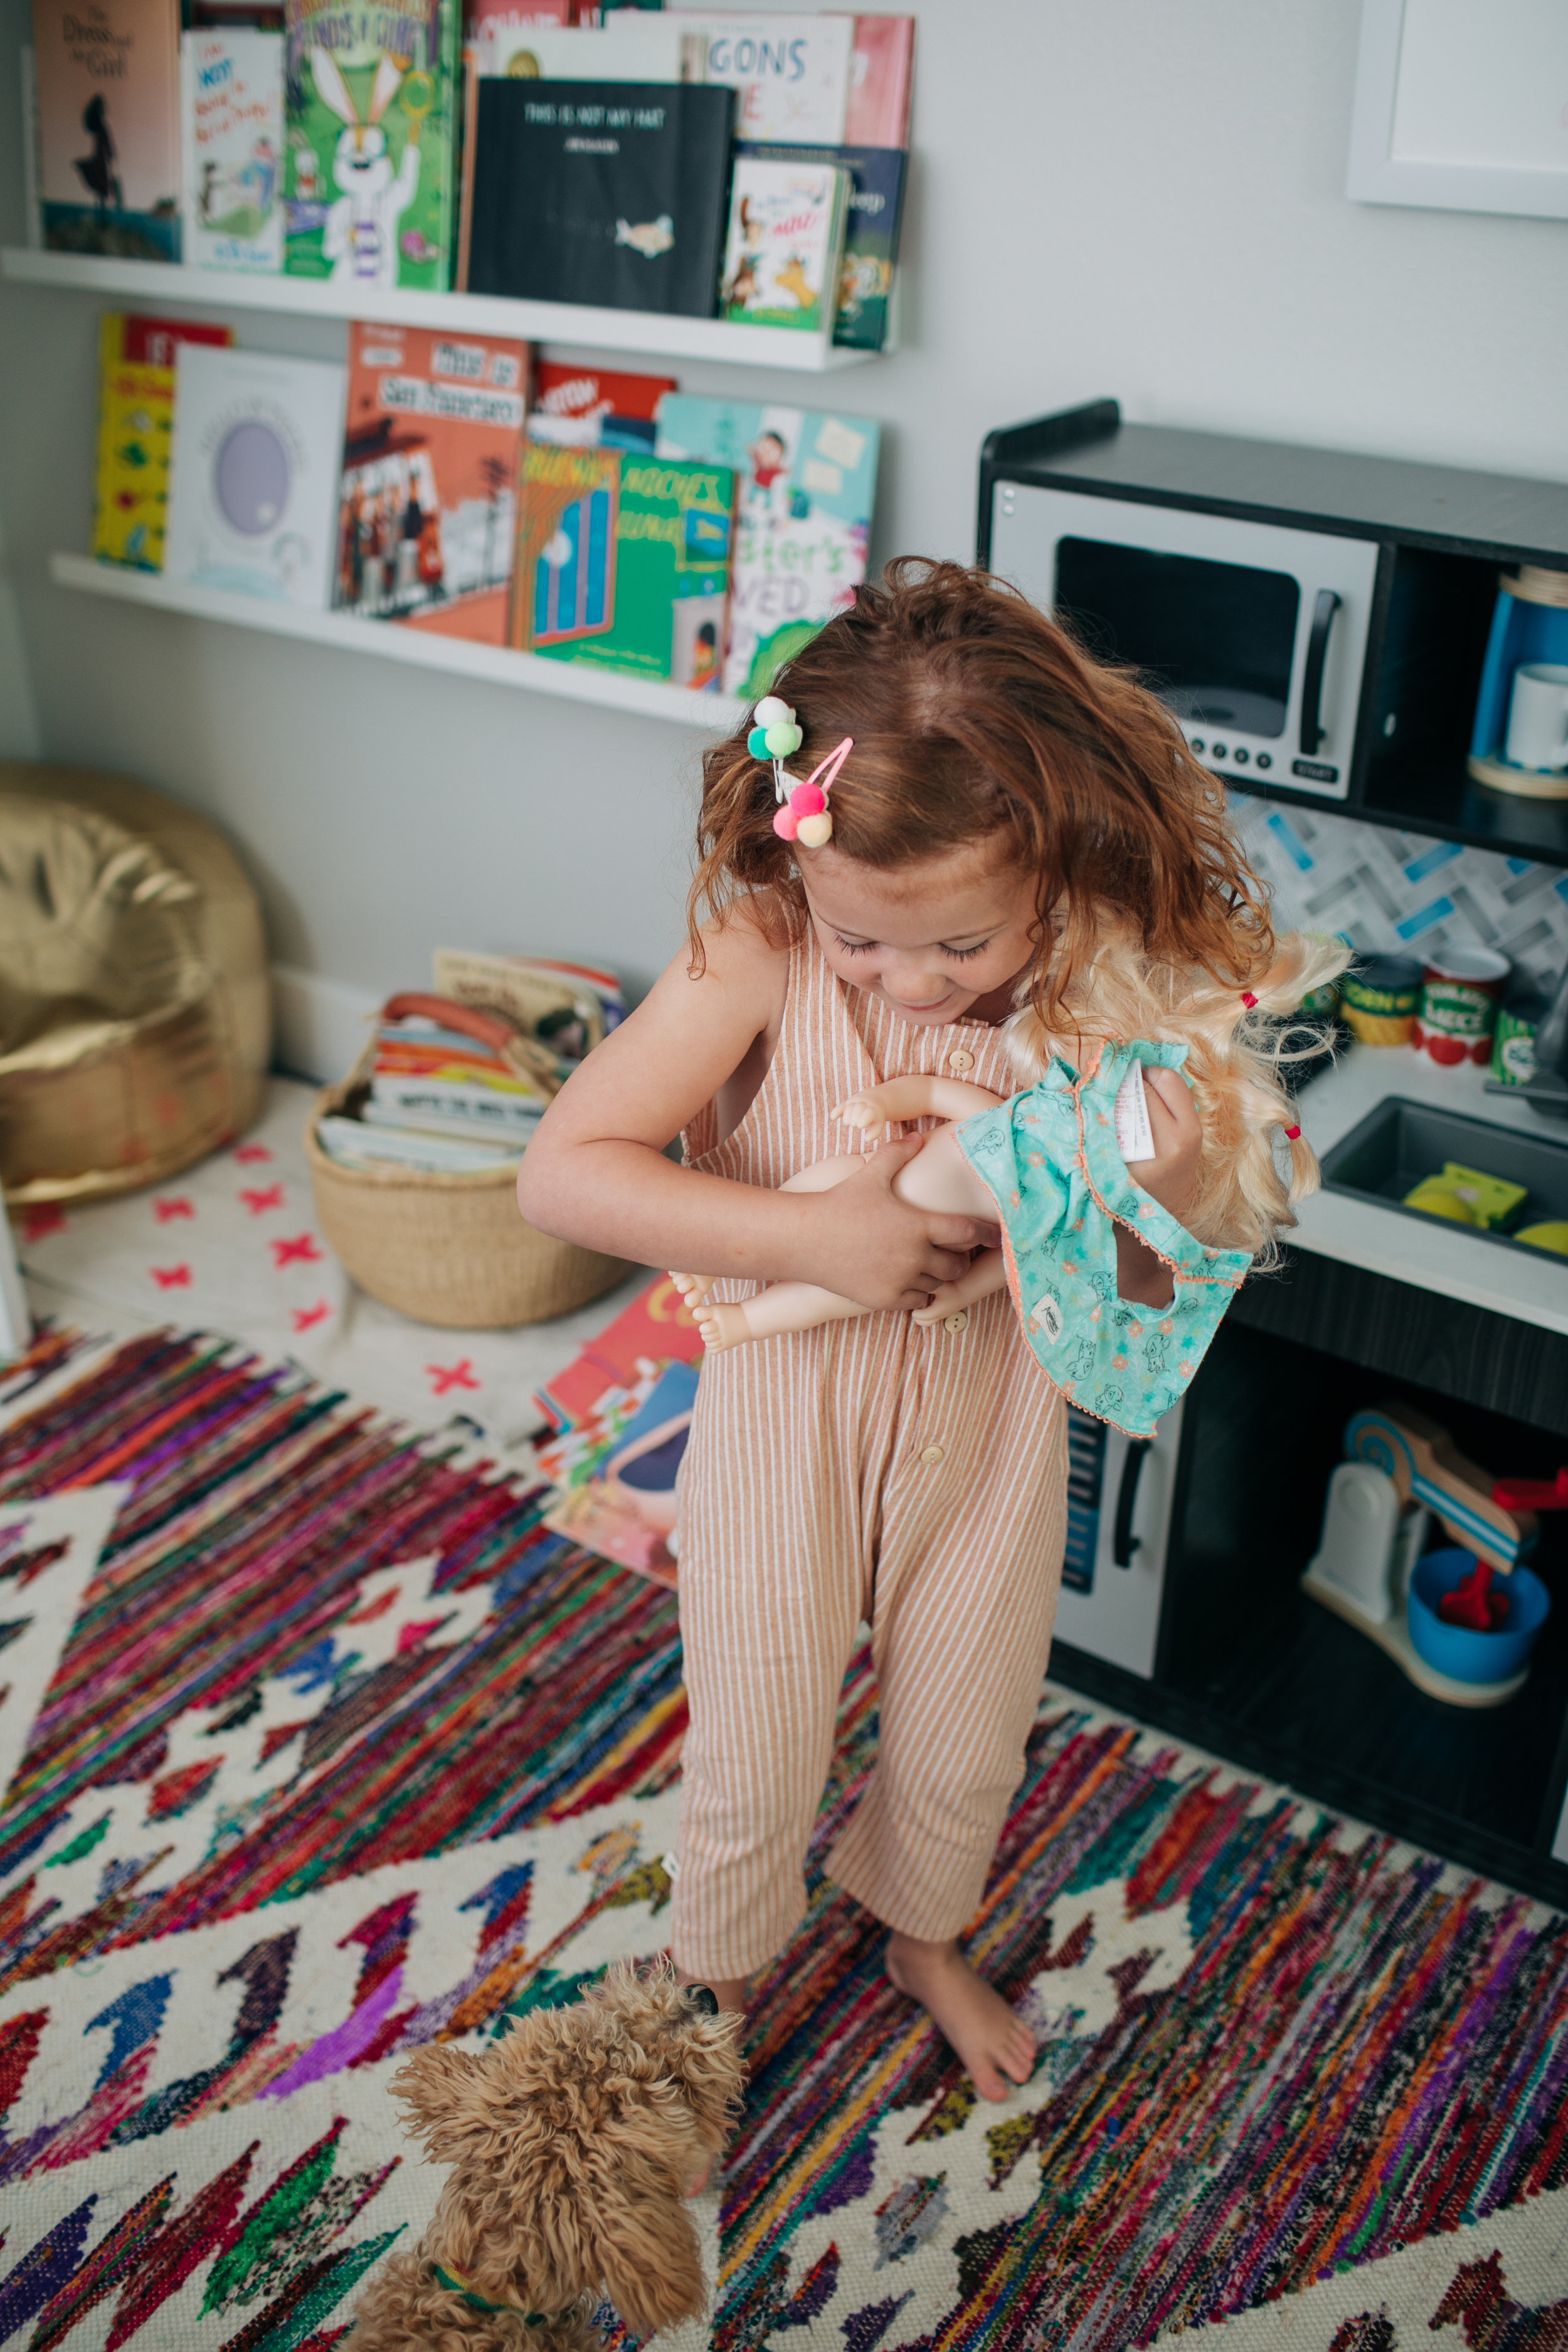 She'll ask if you want to play and then just jump right into whatever it is that she wants. Sometimes it's baby dolls, sometimes it's dress up, sometimes she'll ask you to play music on you phone and have a dance party.